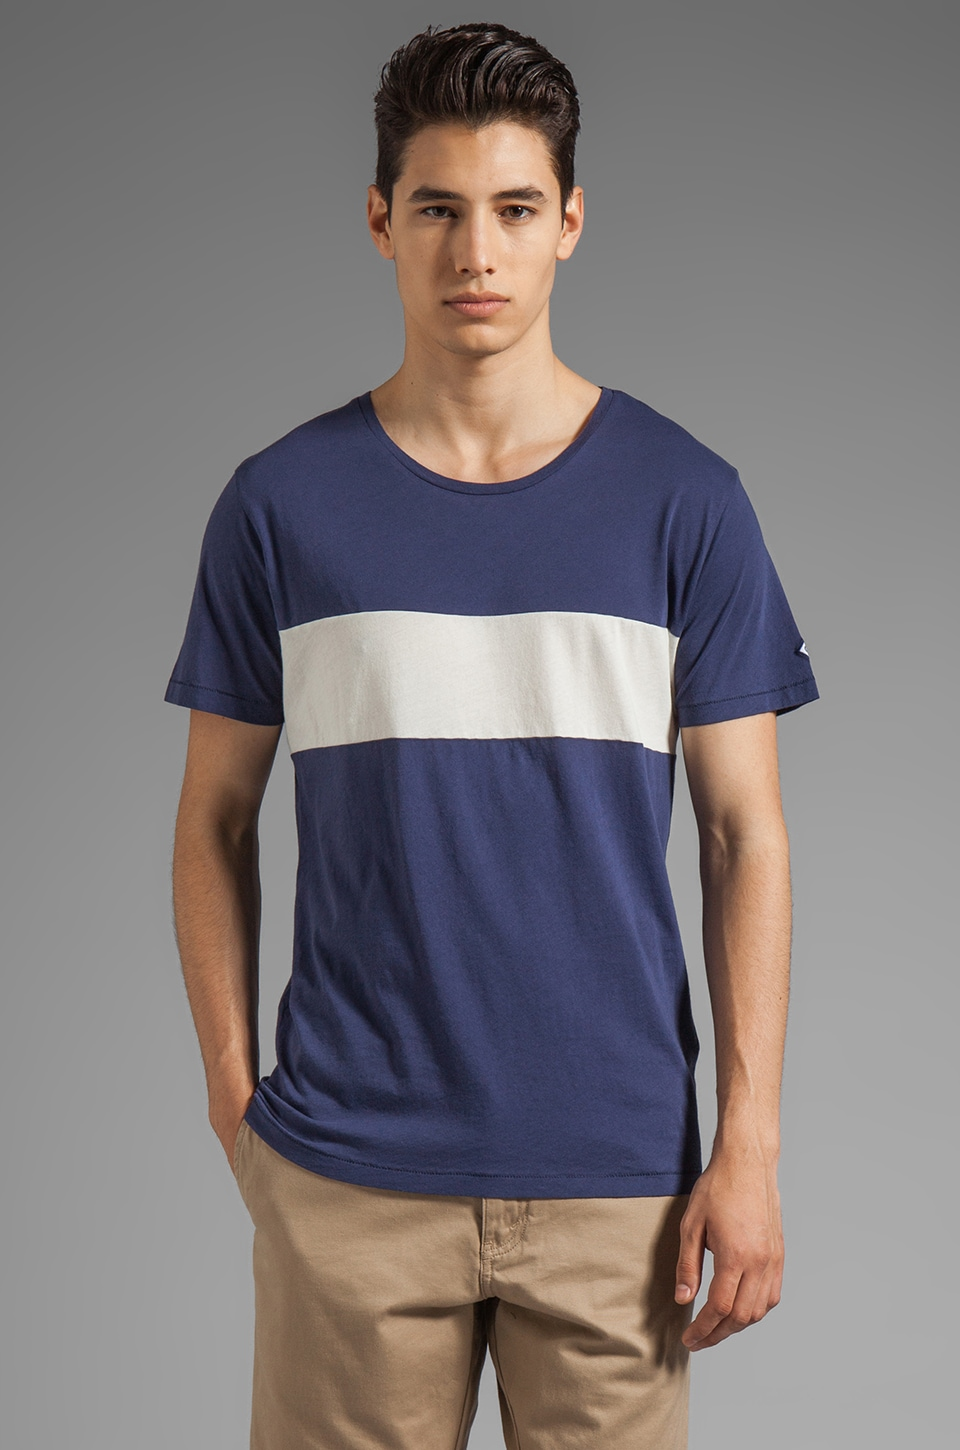 GANT Rugger Cut and Sew Tee in Pilot Blue